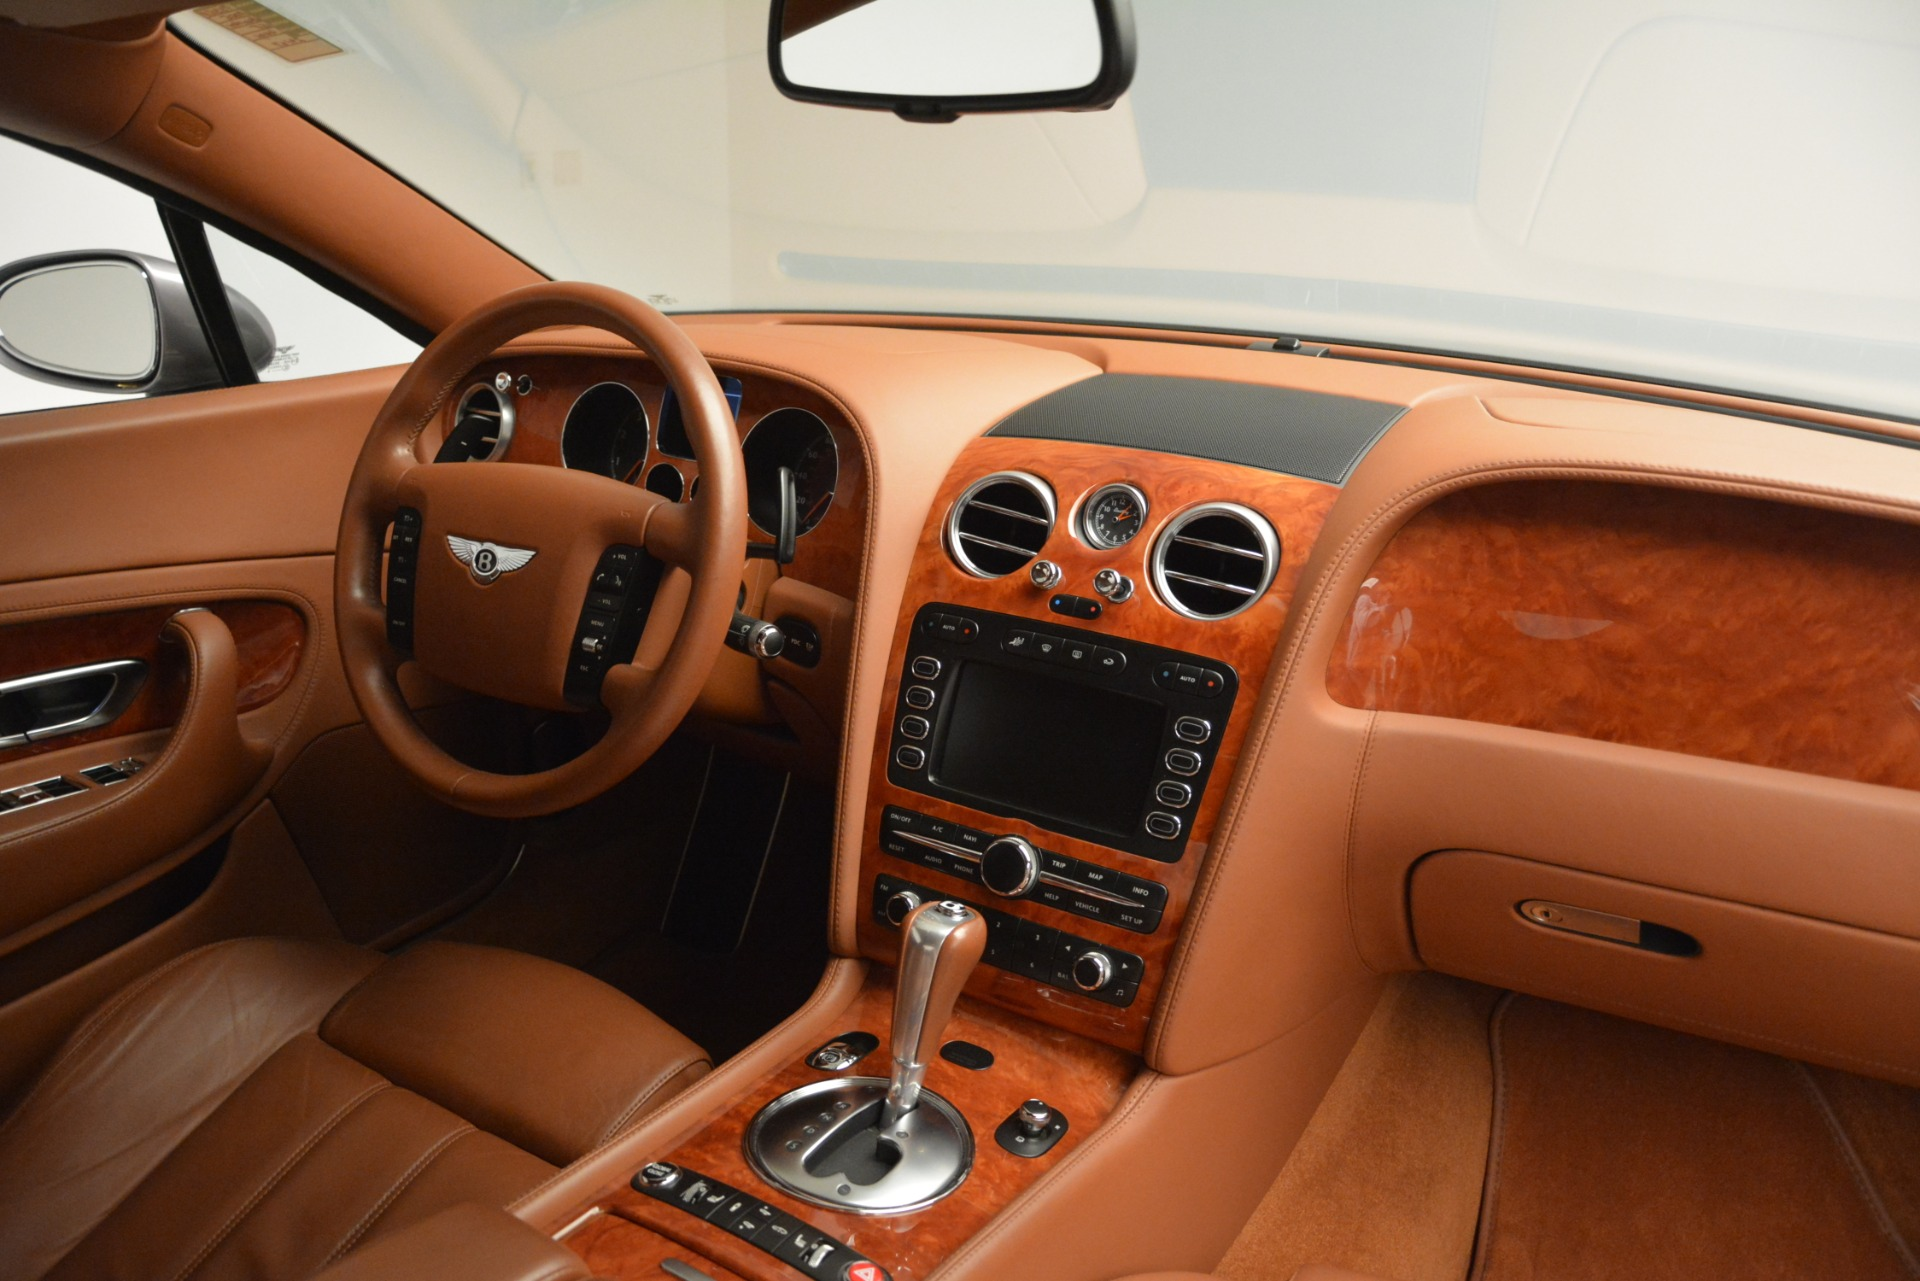 Used 2005 Bentley Continental GT GT Turbo For Sale In Westport, CT 2726_p30